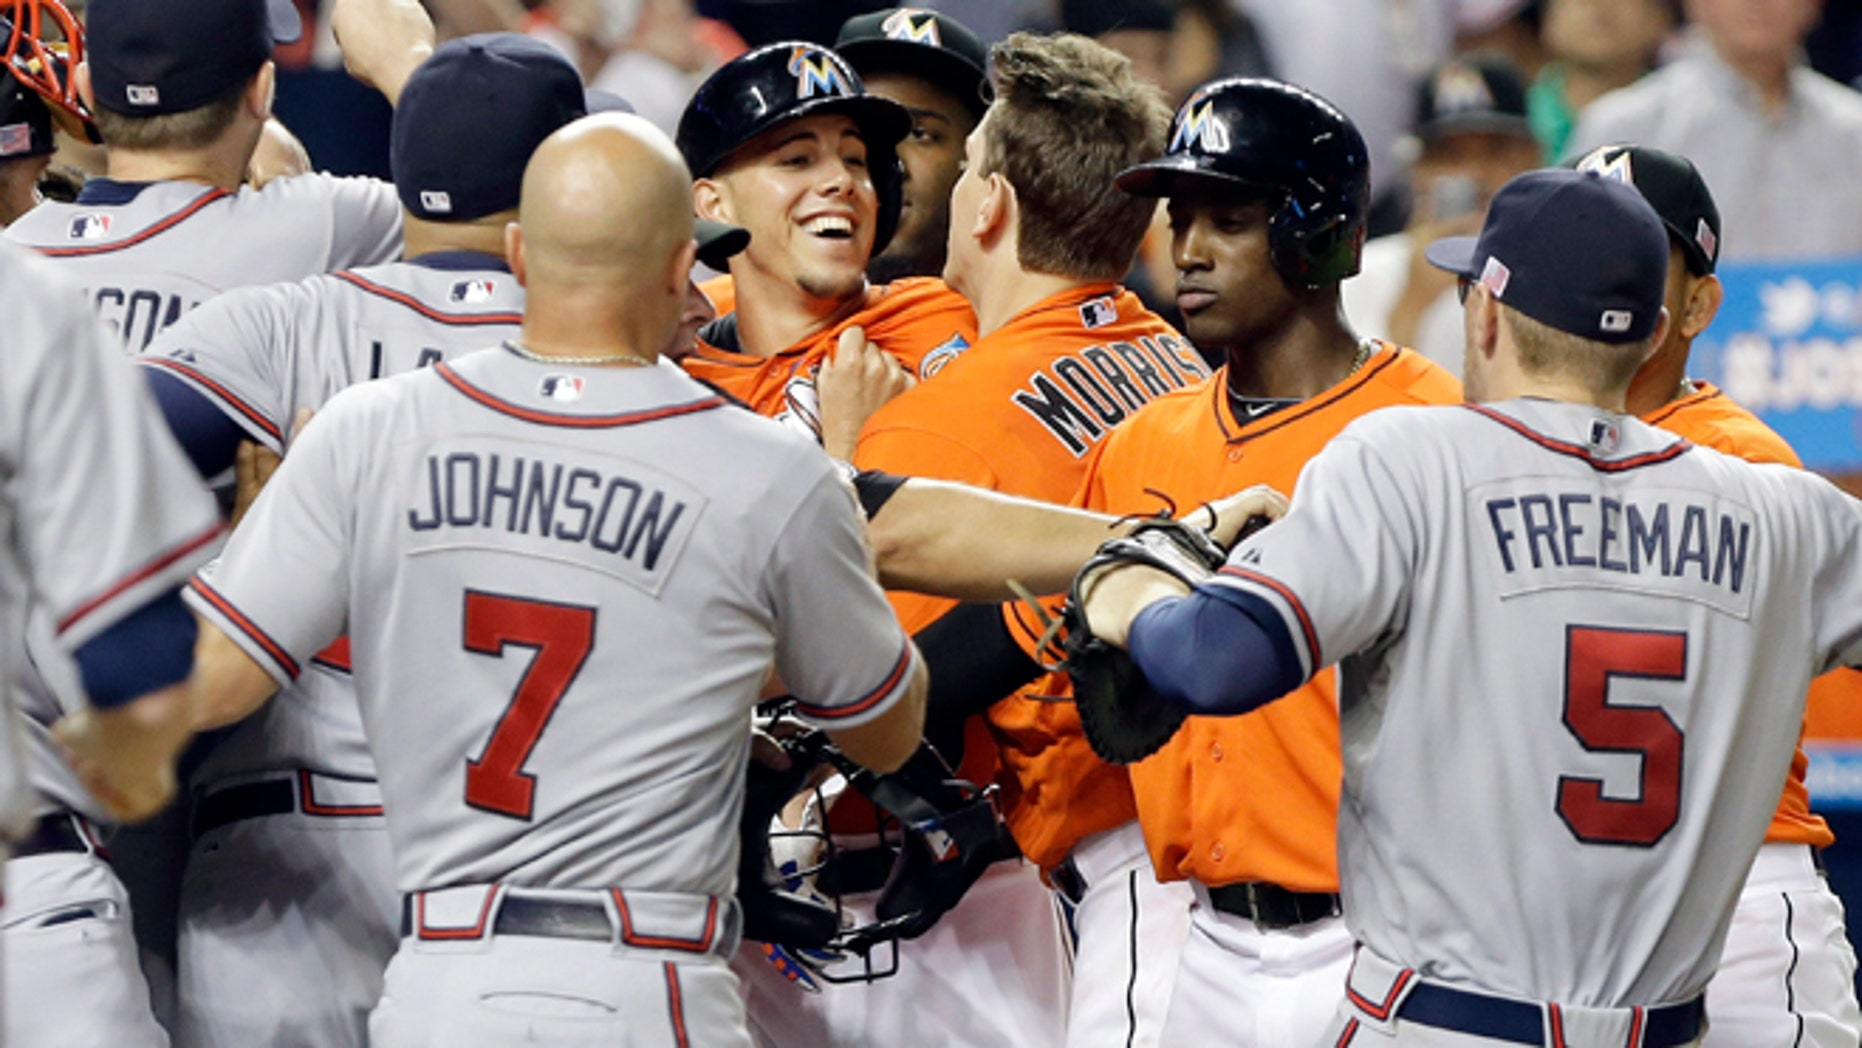 Miami Marlins starting pitcher Jose Fernandez is surrounded by Atlanta Braves players after an altercation broke out Wednesday, Sept. 11, 2013, in Miami.